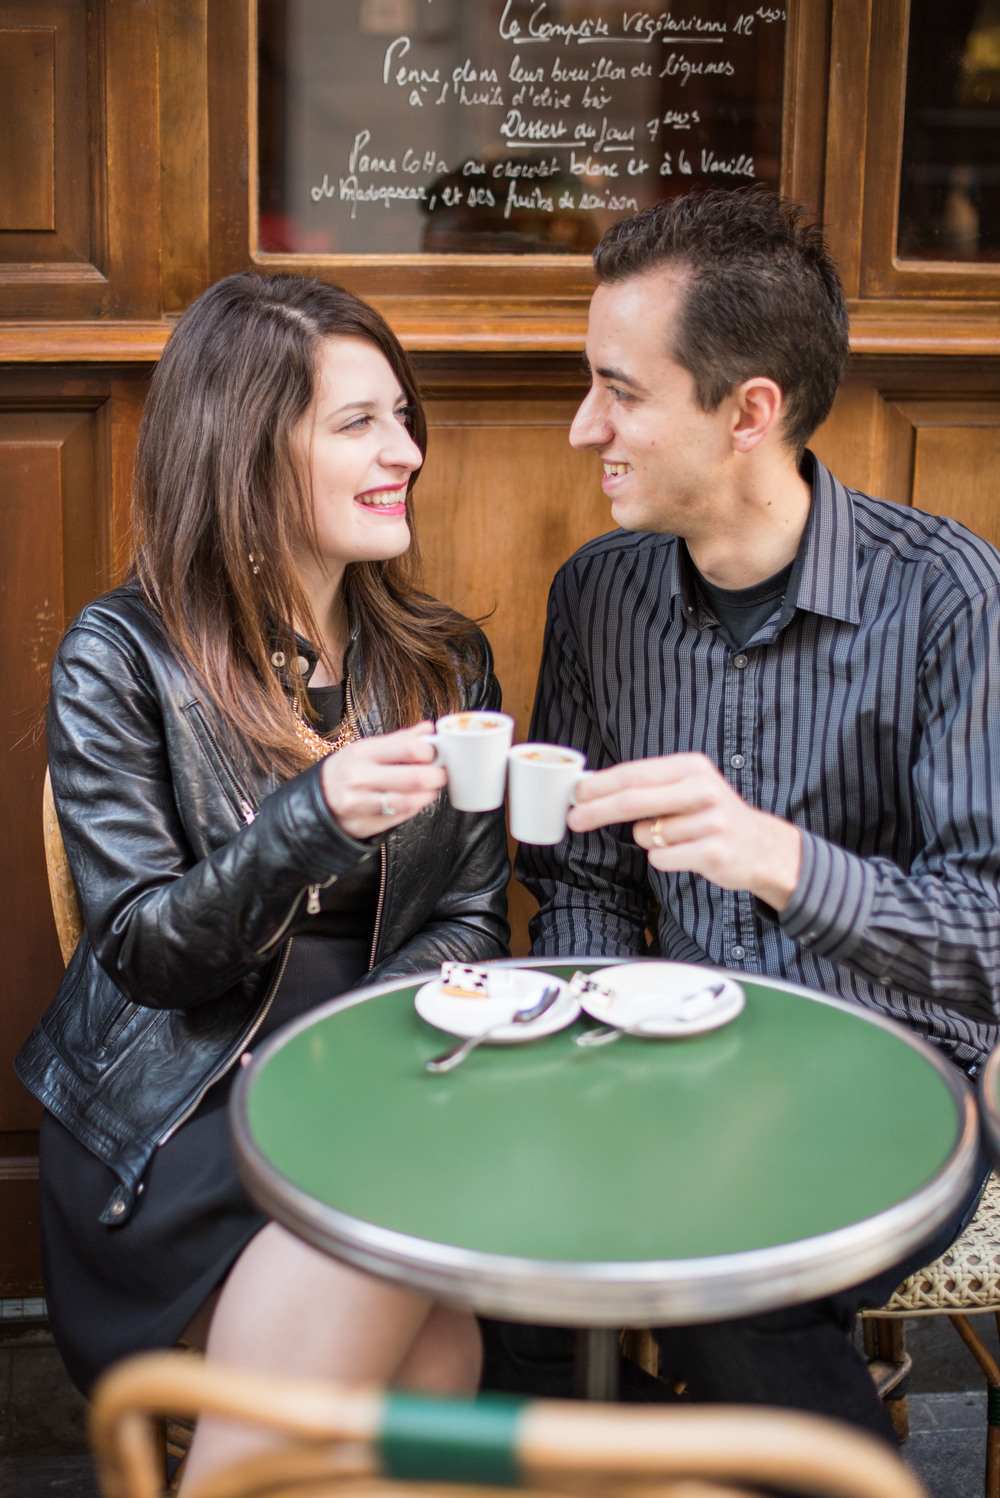 Espresso for two at Les Philosophes on rue Vieille du Temple